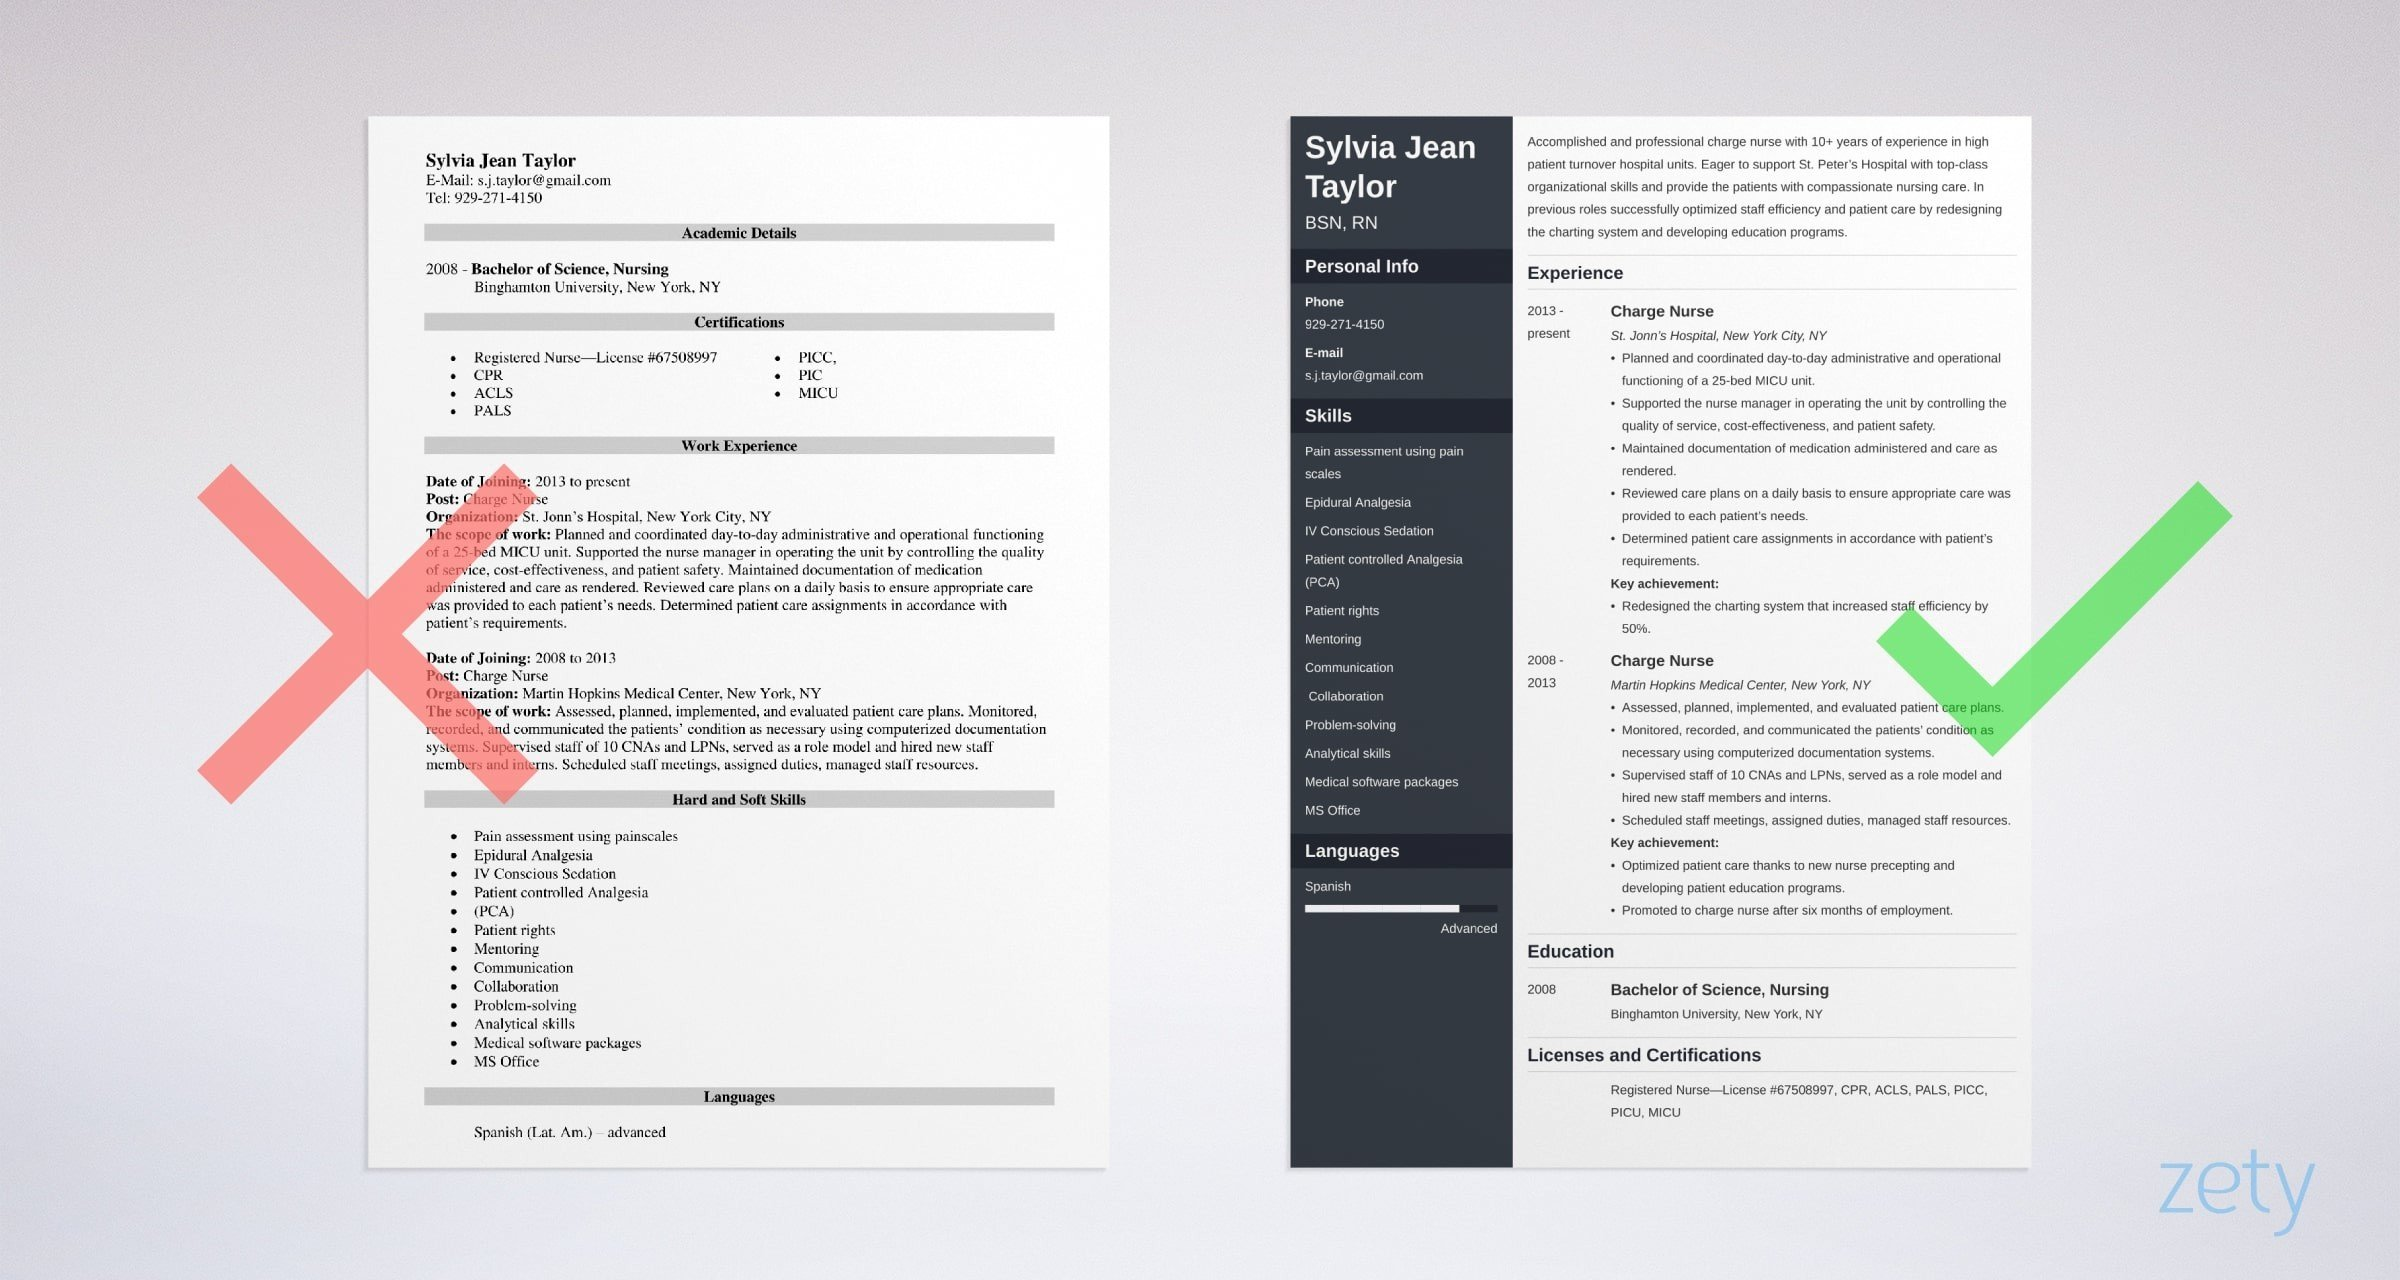 Charge Nurse Resume.Charge Nurse Resume Examples Writing Guide 20 Tips